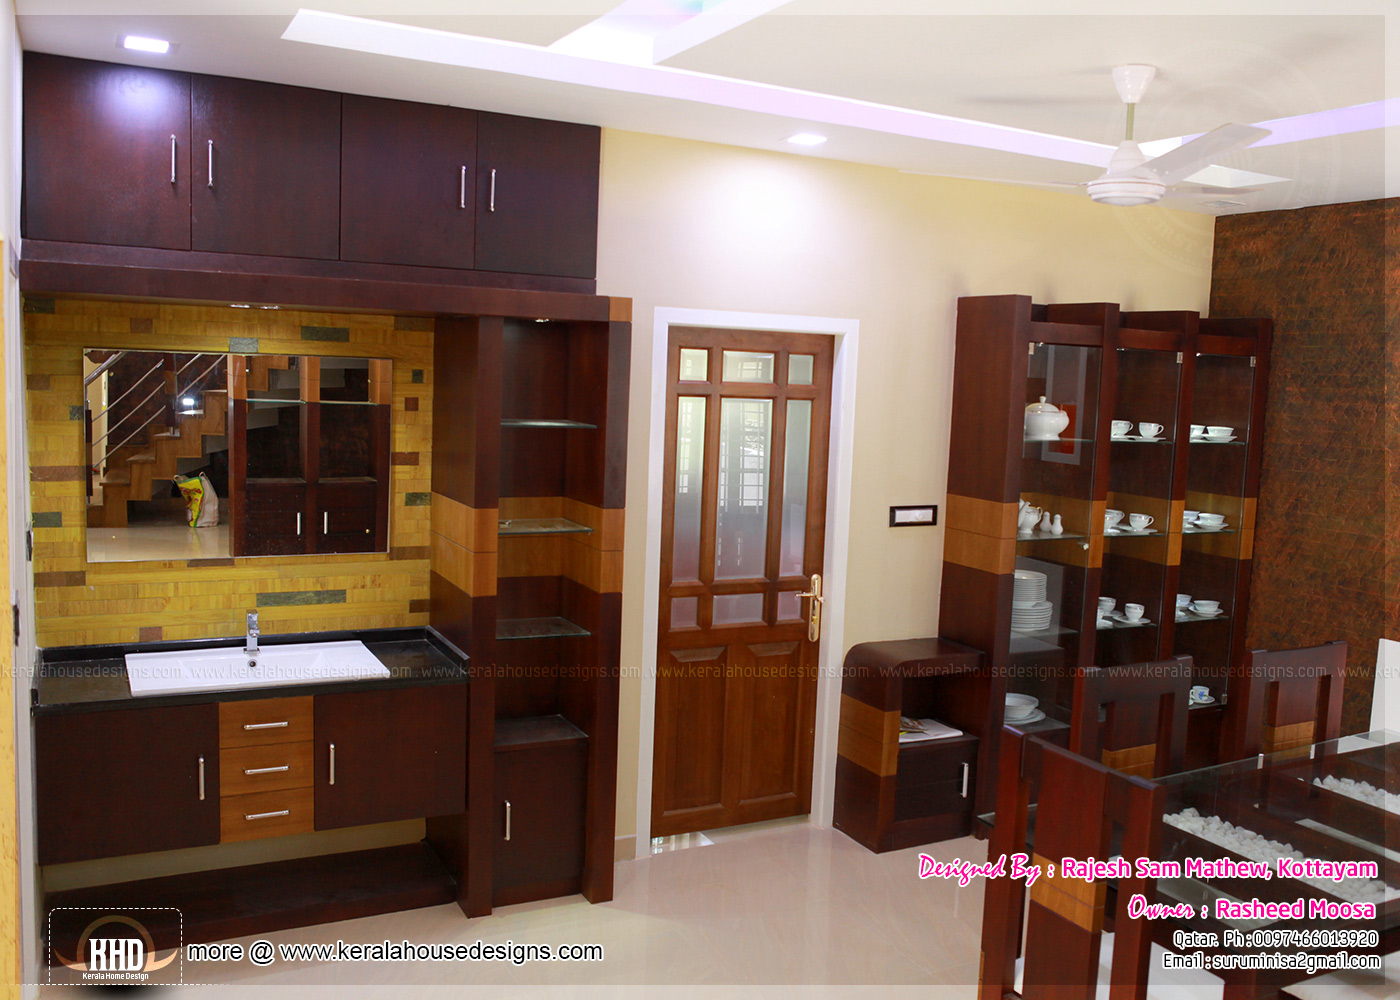 Kerala Interior Design With Photos Home Plans